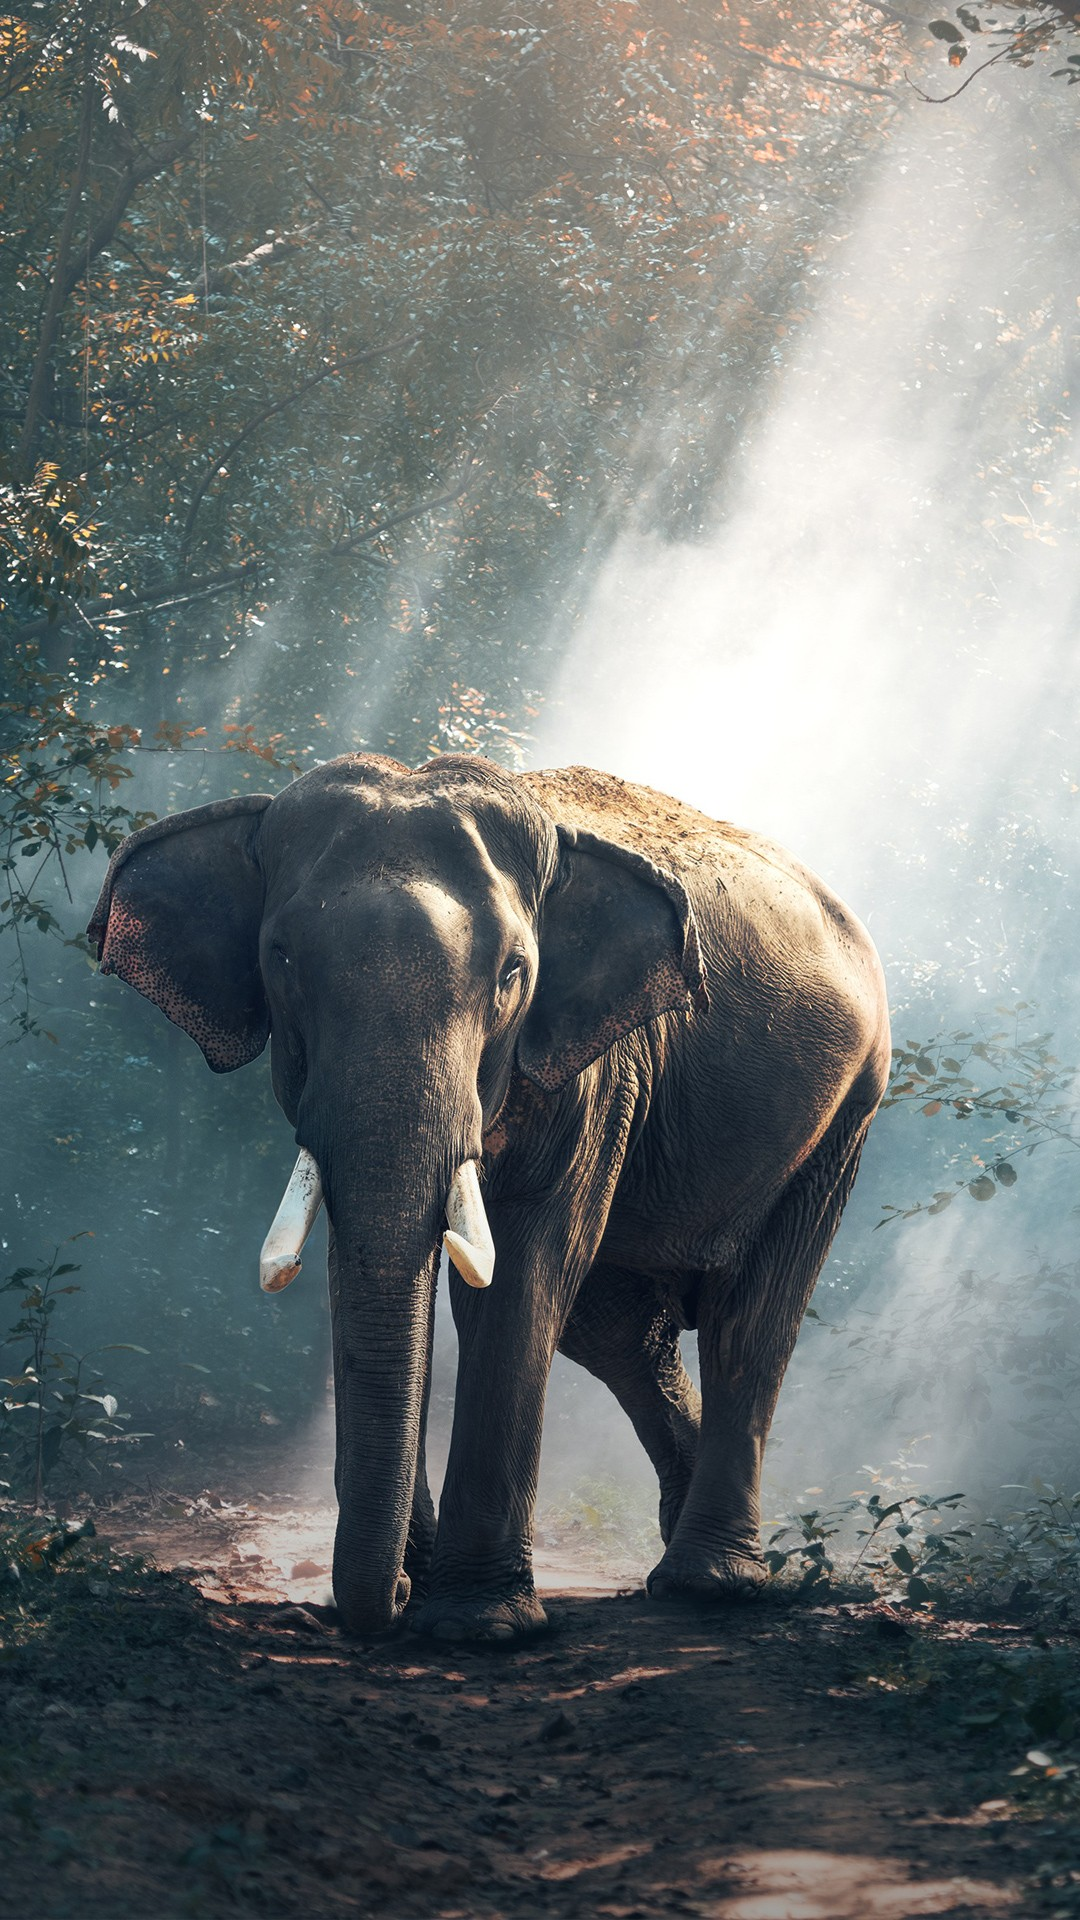 Hd Desktop Wallpapers For Windows 7 Forest Elephant 4k Wallpapers Hd Wallpapers Id 22363